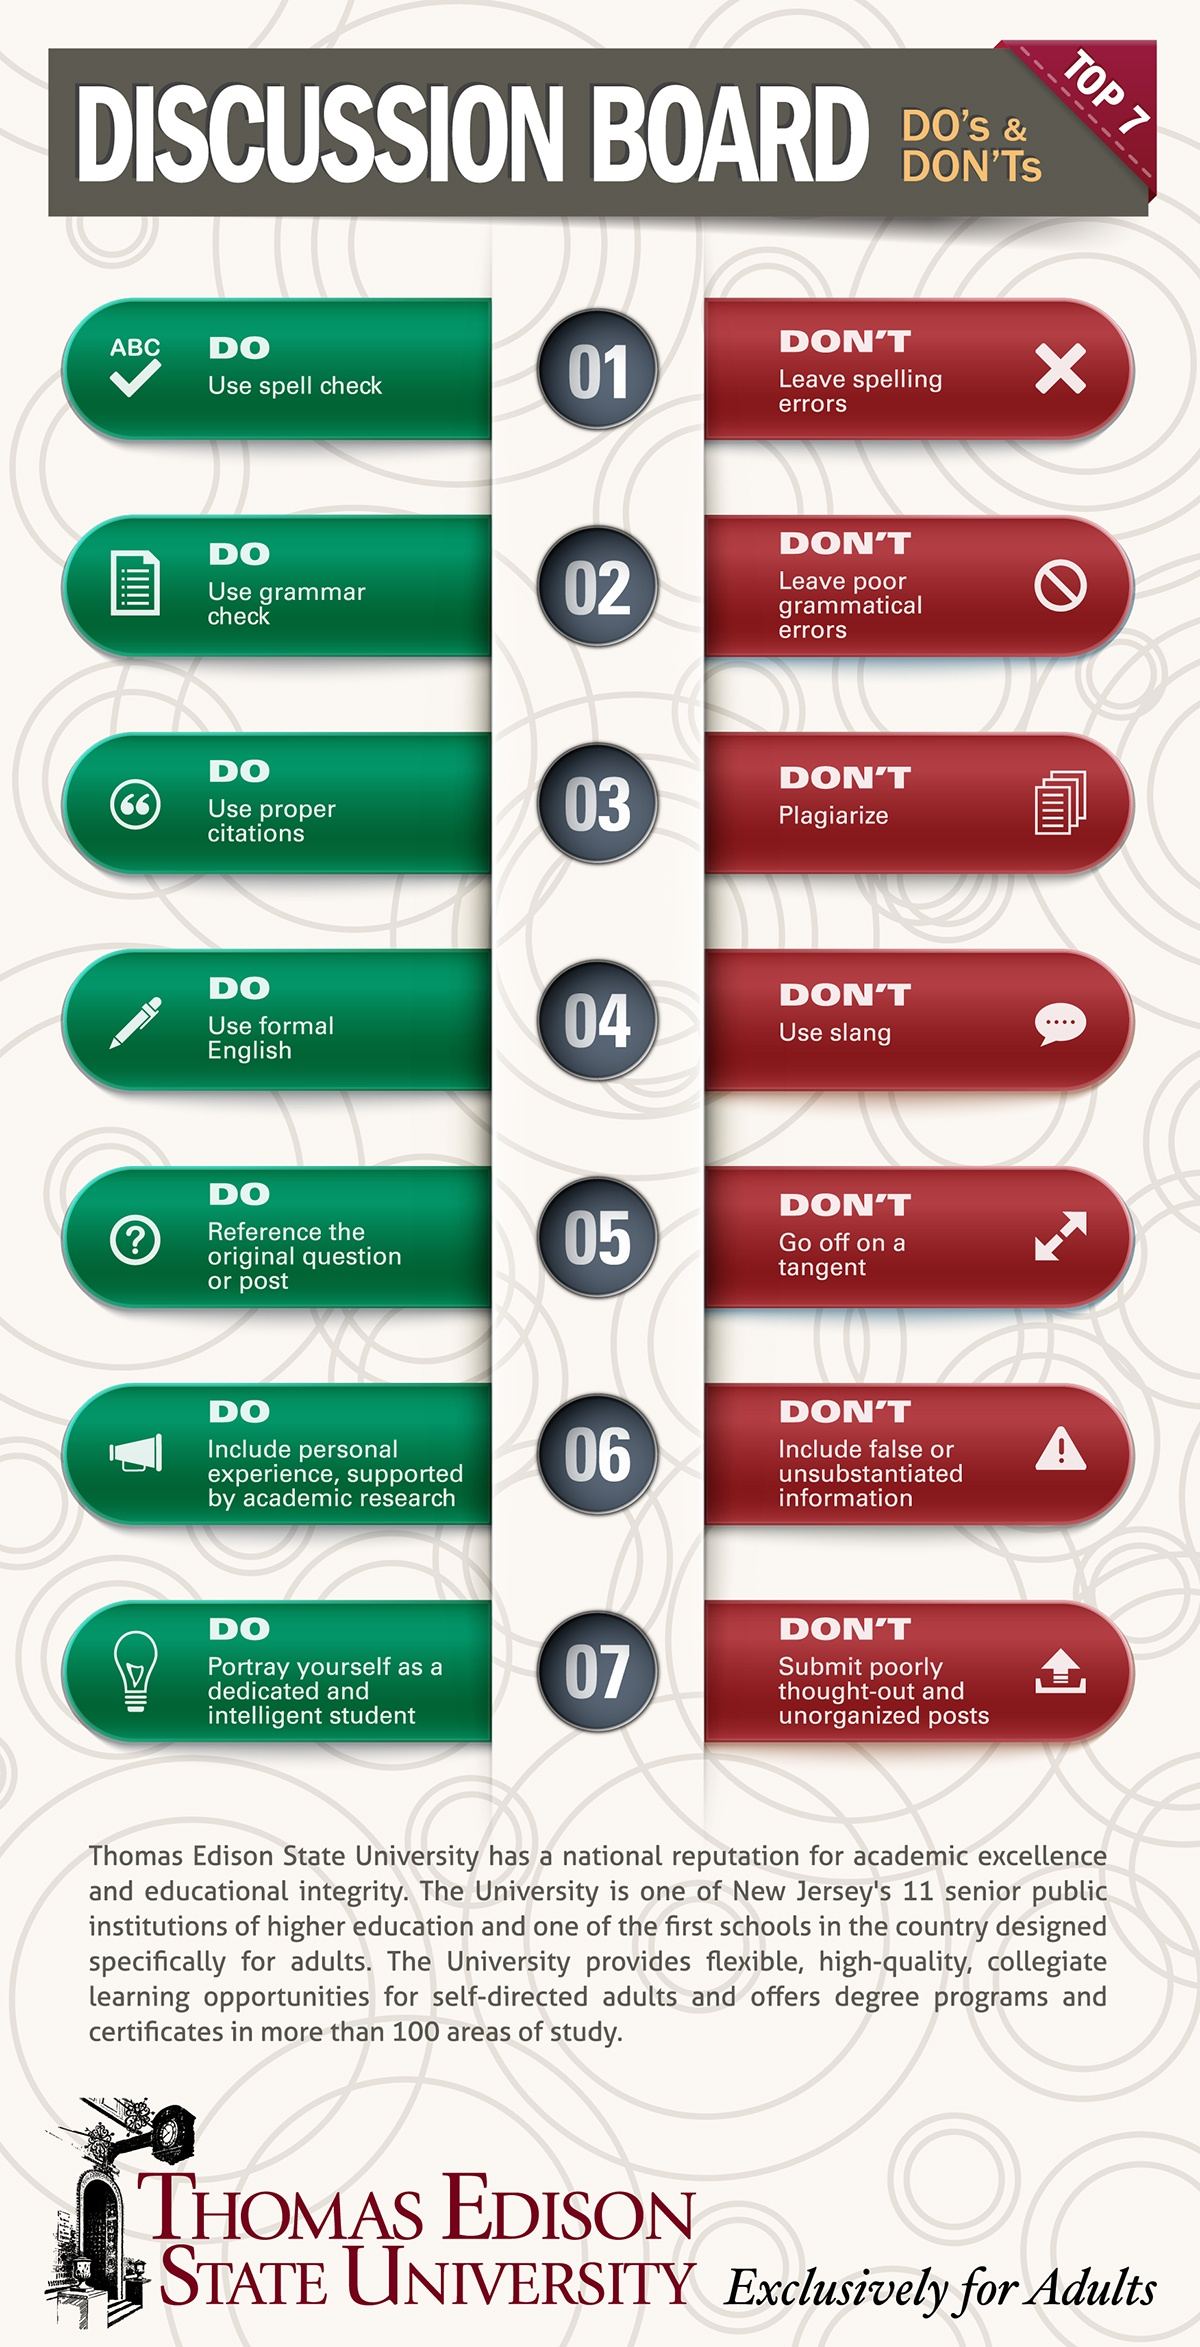 The Top 7 Discussion Board Do's and Don'ts (Infographic)